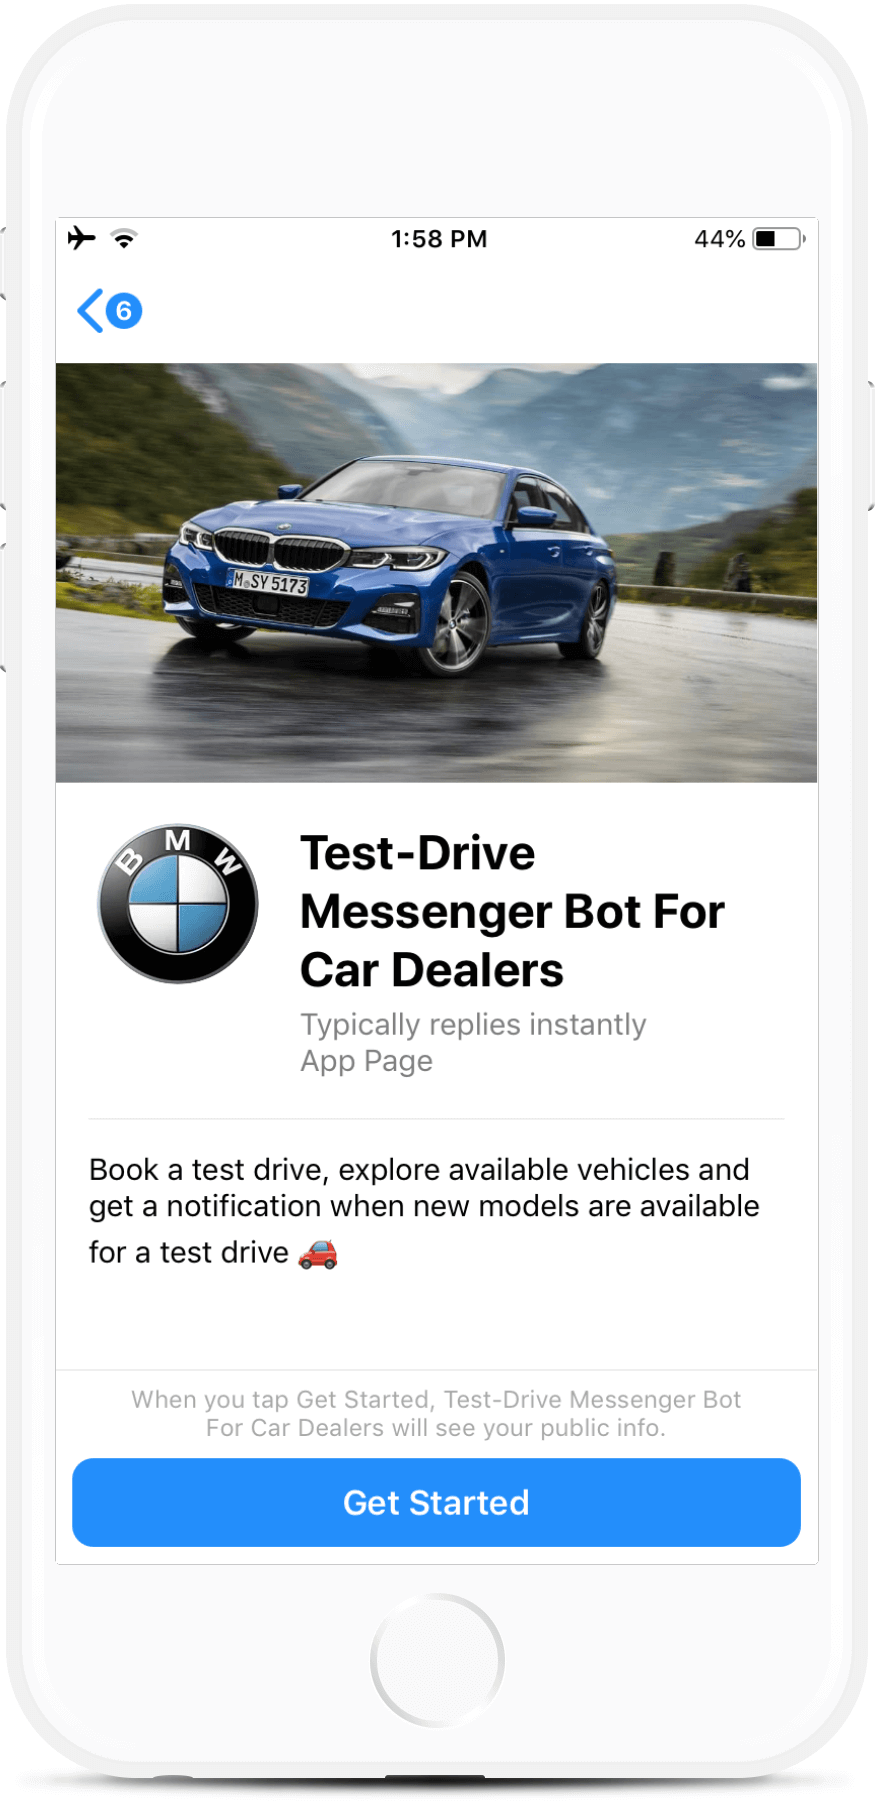 Test-Drive Messenger Bot for Car Dealers